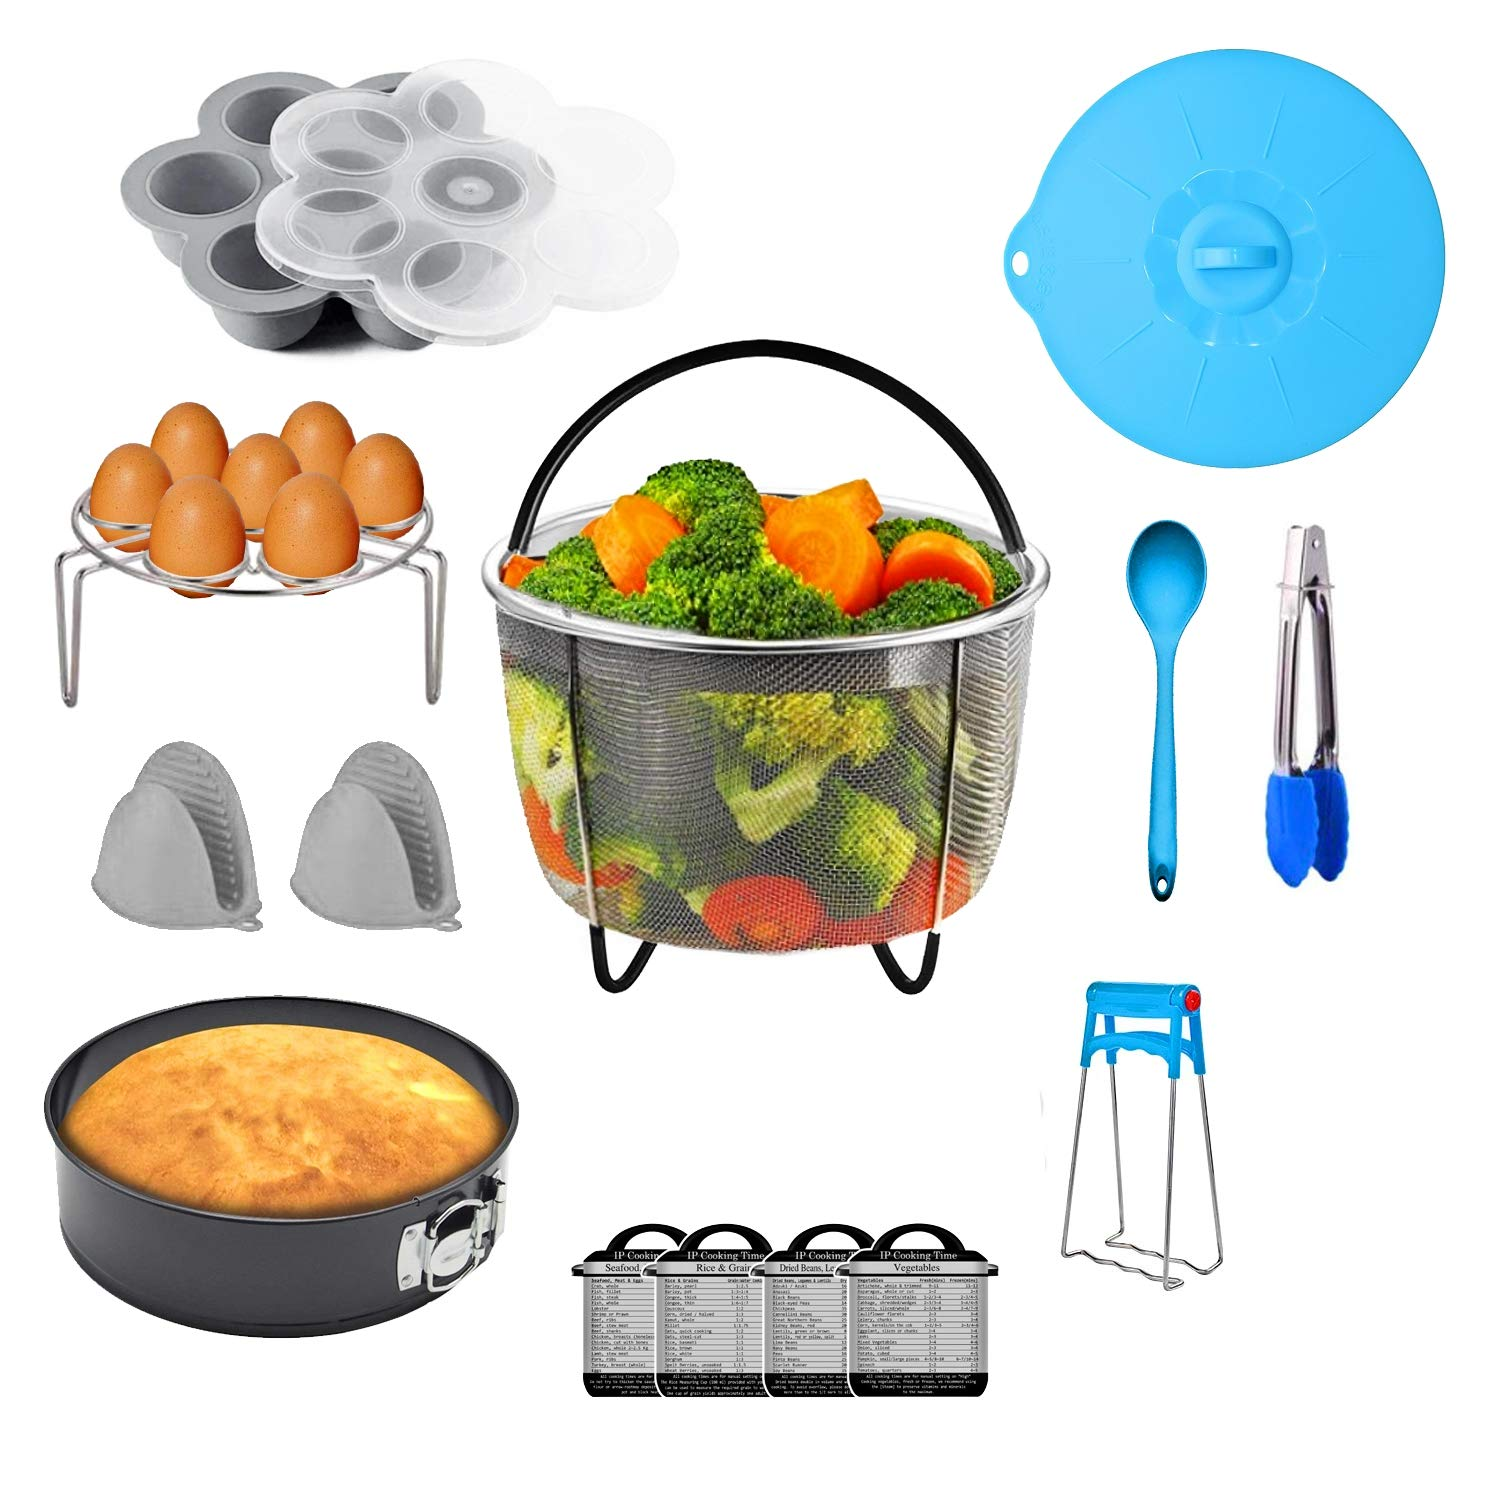 Instant Pot Accessories 15 Pcs Set - Compatible with Instant Pot 5,6,8 QT - Electric Pressure Cooker Value Pack With Steamer Basket, Egg Rack, Springform Pan, Egg Silicone Mold, Oven Mitts, and More